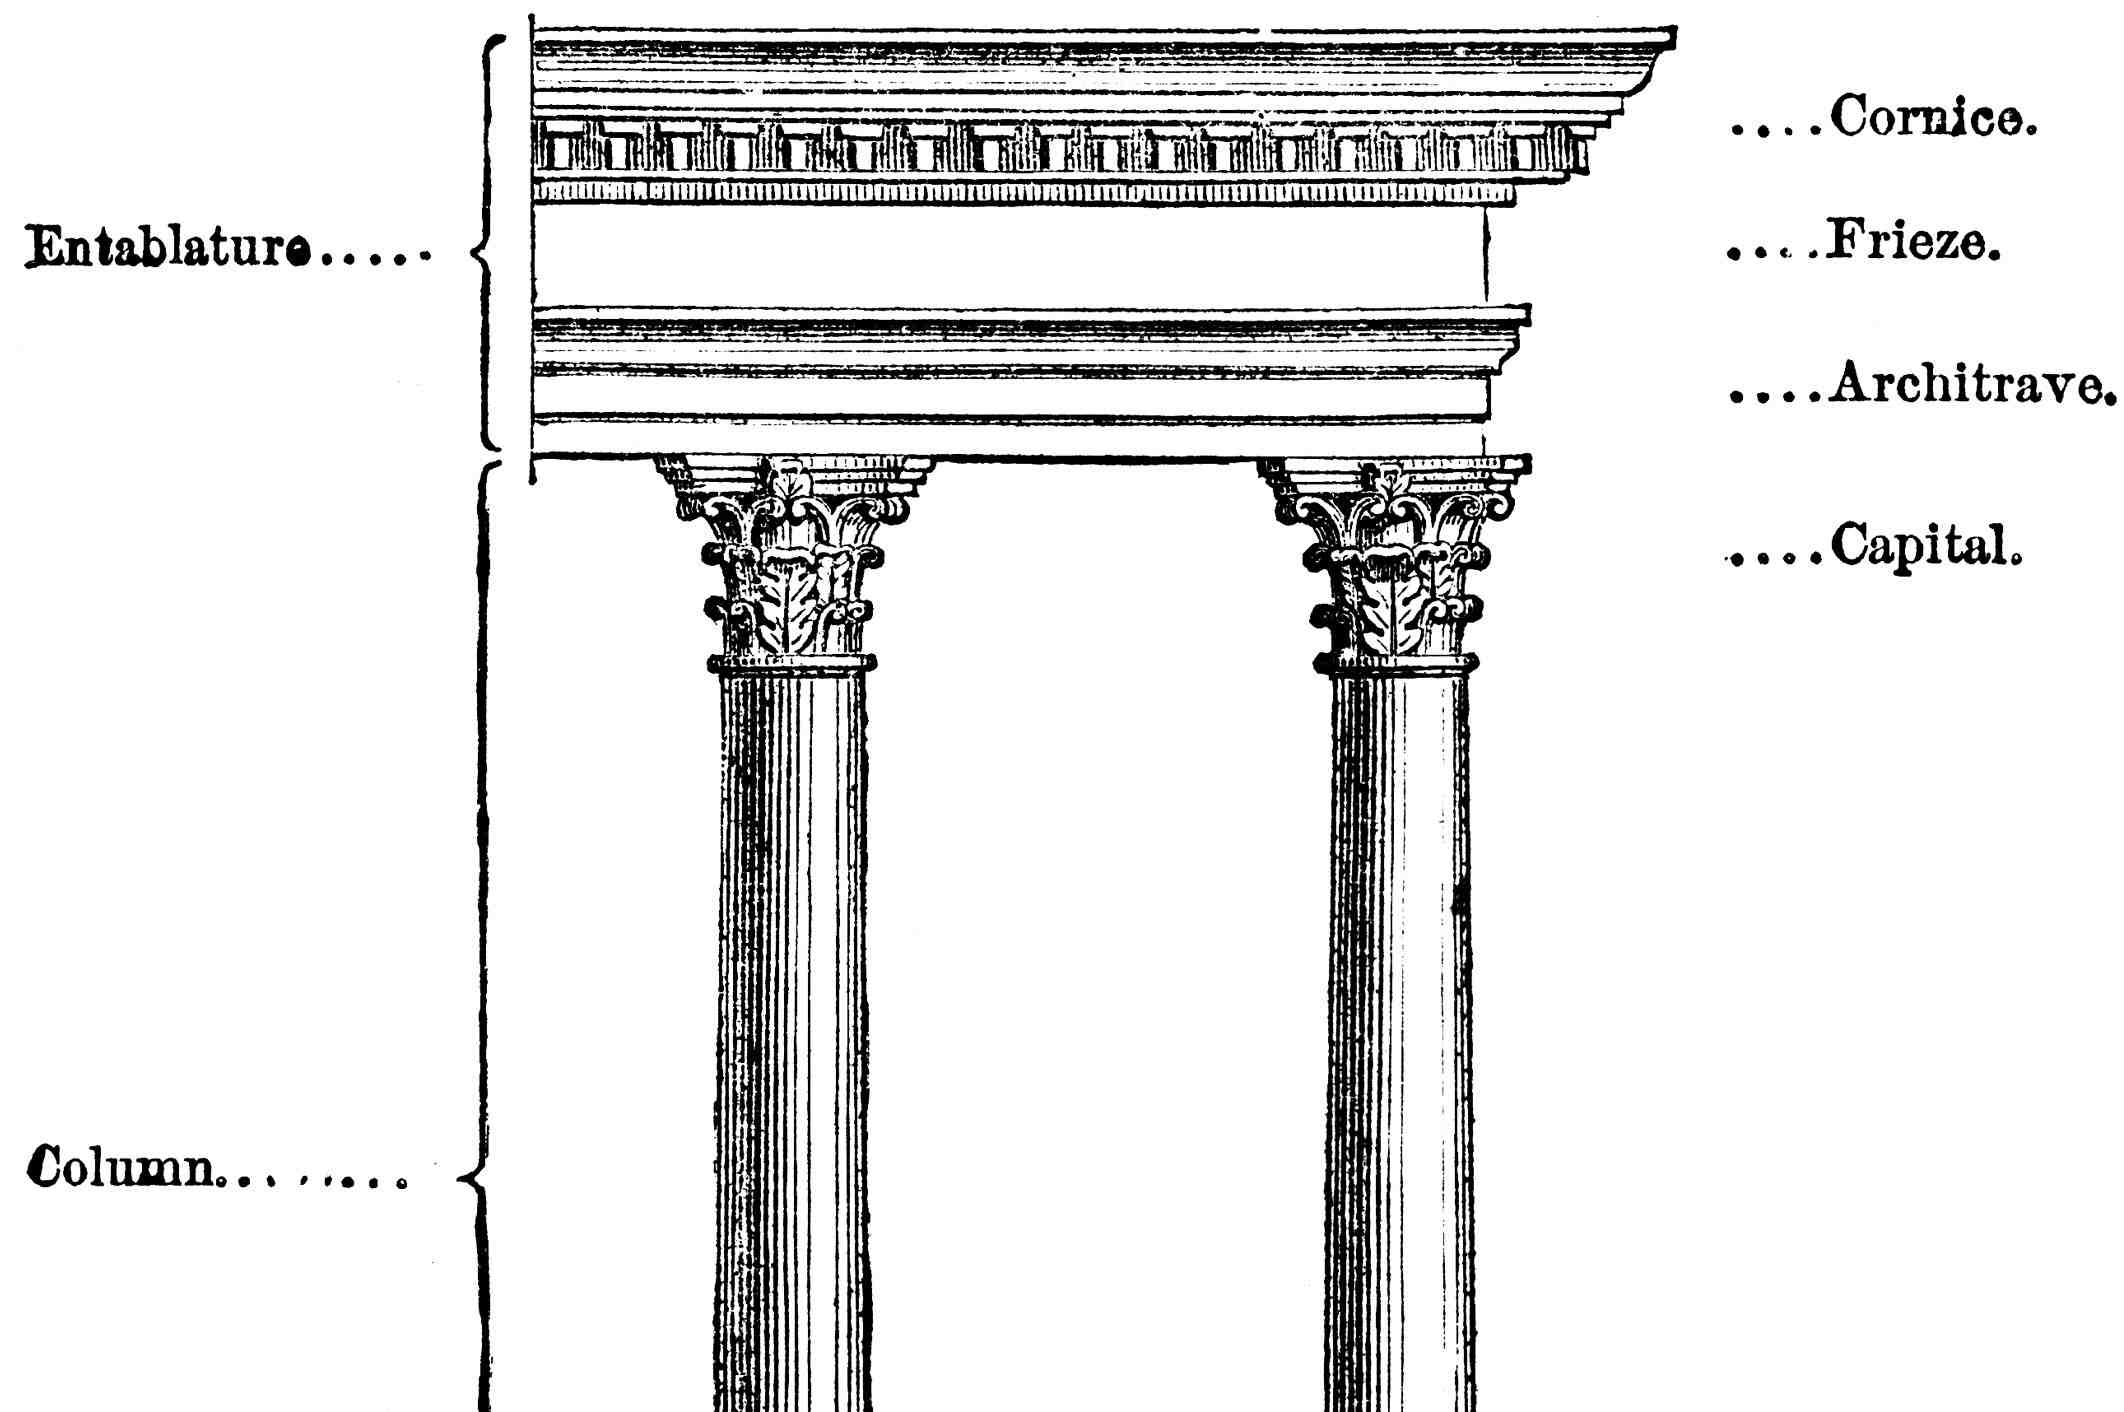 Illustration shows parts of the Entablature (cornice, frieze, architrave) with capital and column